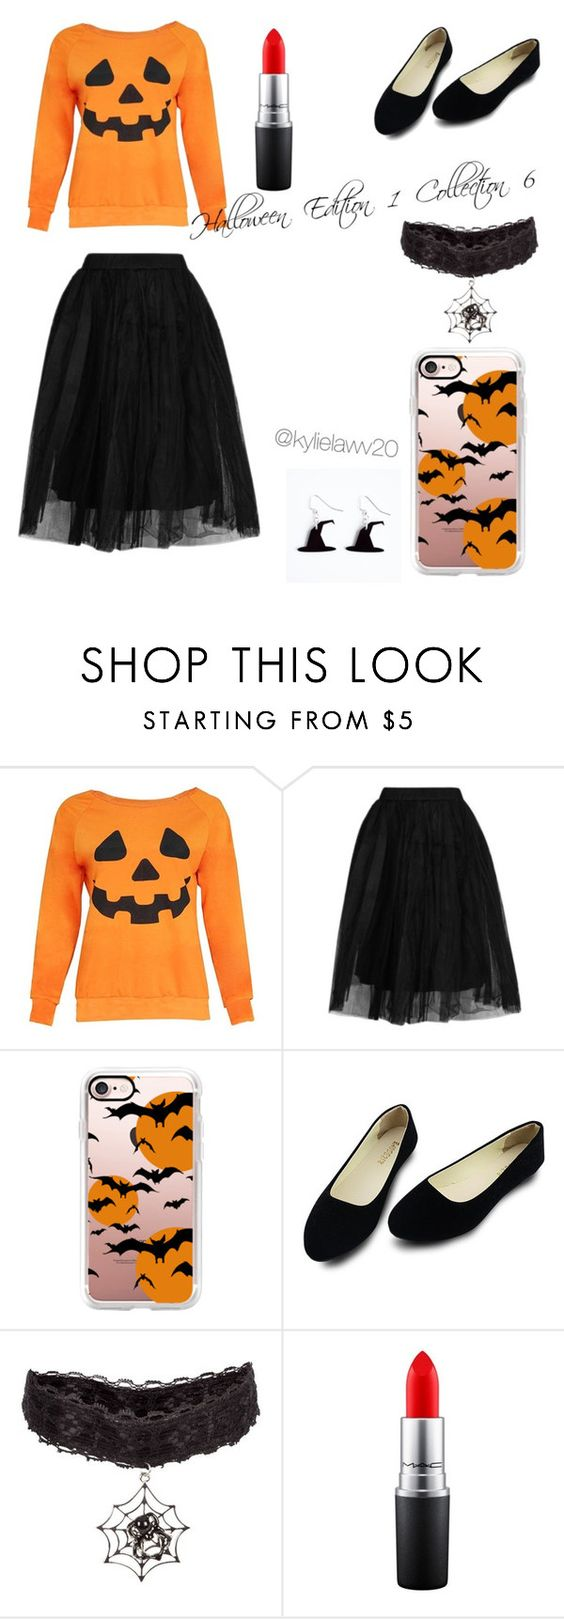 """""""Halloween Edition 1 Collection 6"""" by kylielawv20 ❤ liked on Polyvore featuring beauty, Topshop, Casetify and MAC Cosmetics"""